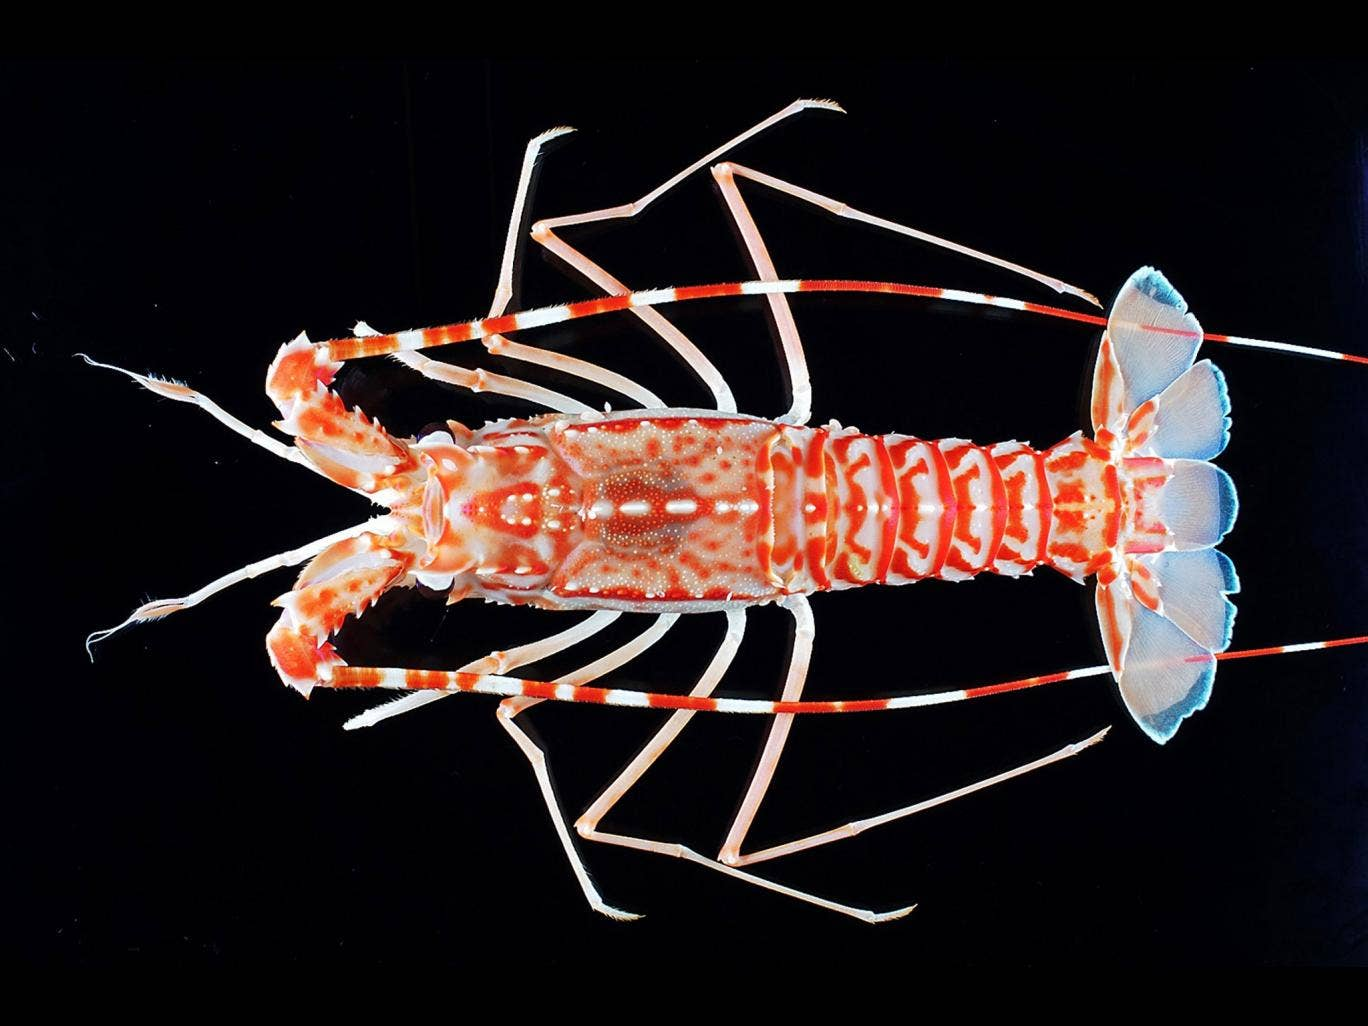 A deep-sea lobster of the genus Puerulus from the Indian Ocean which was recently discovered to be new to science. Extinction rates of animals and plants on Earth have been exaggerated, according to a team of researchers